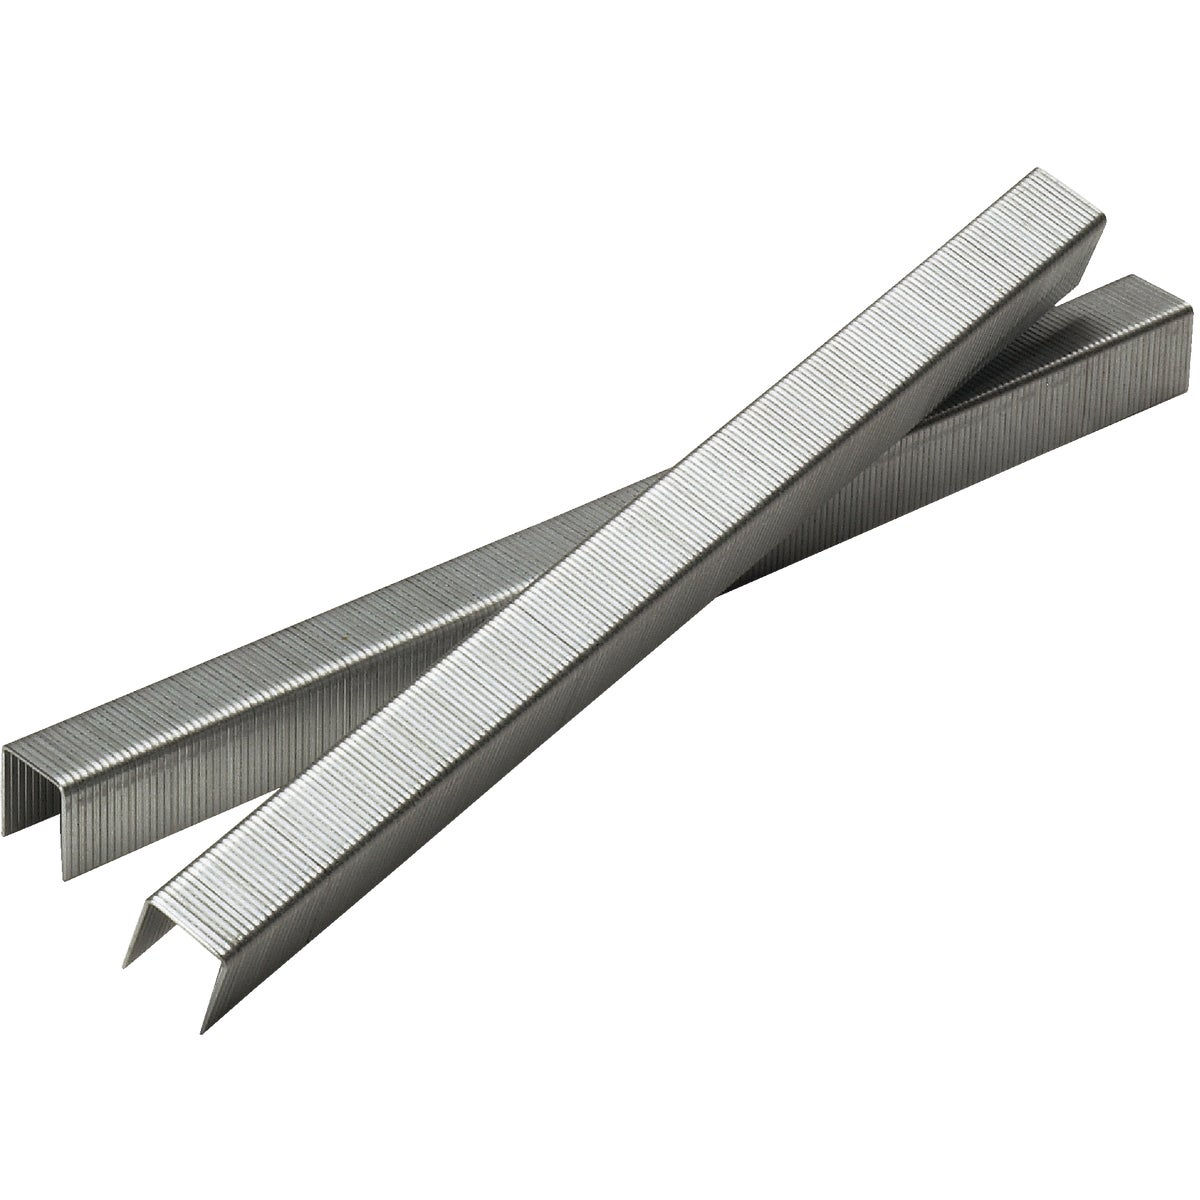 "20GA 1/2"" FINE STAPLE - F06BGA by Senco Brands"